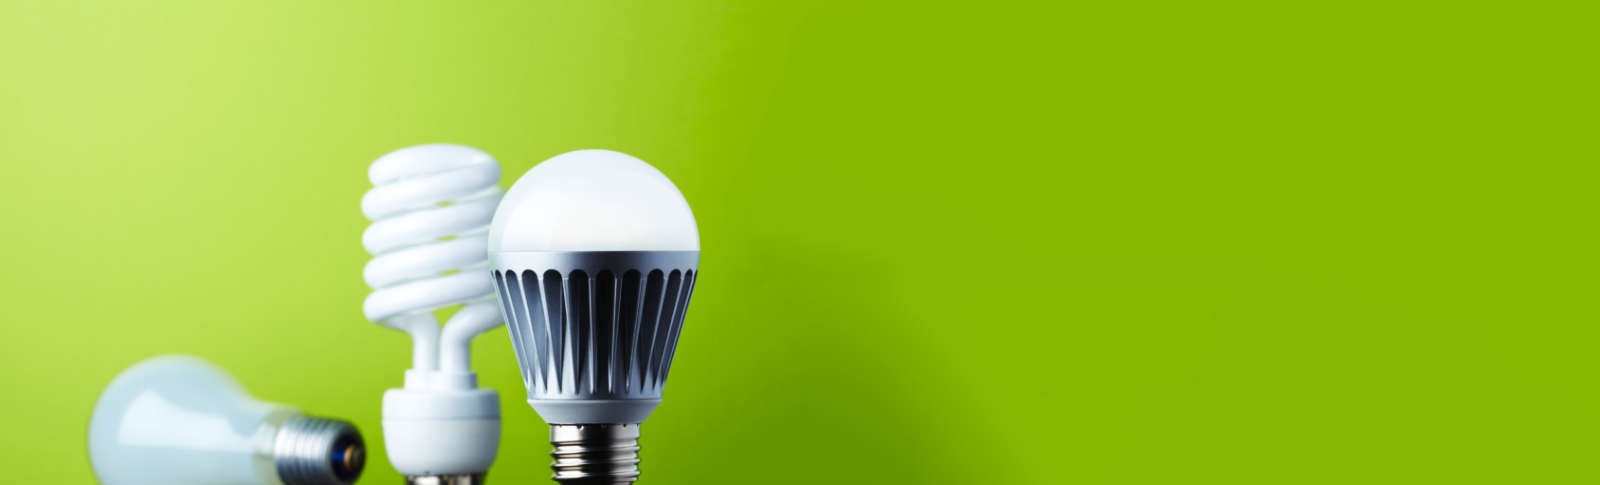 Did You Know That Switching Out Traditional Light Bulbs For  Energy Efficient Bulbs Is One Of The Easiest Ways To Start Saving Energy At  Home?